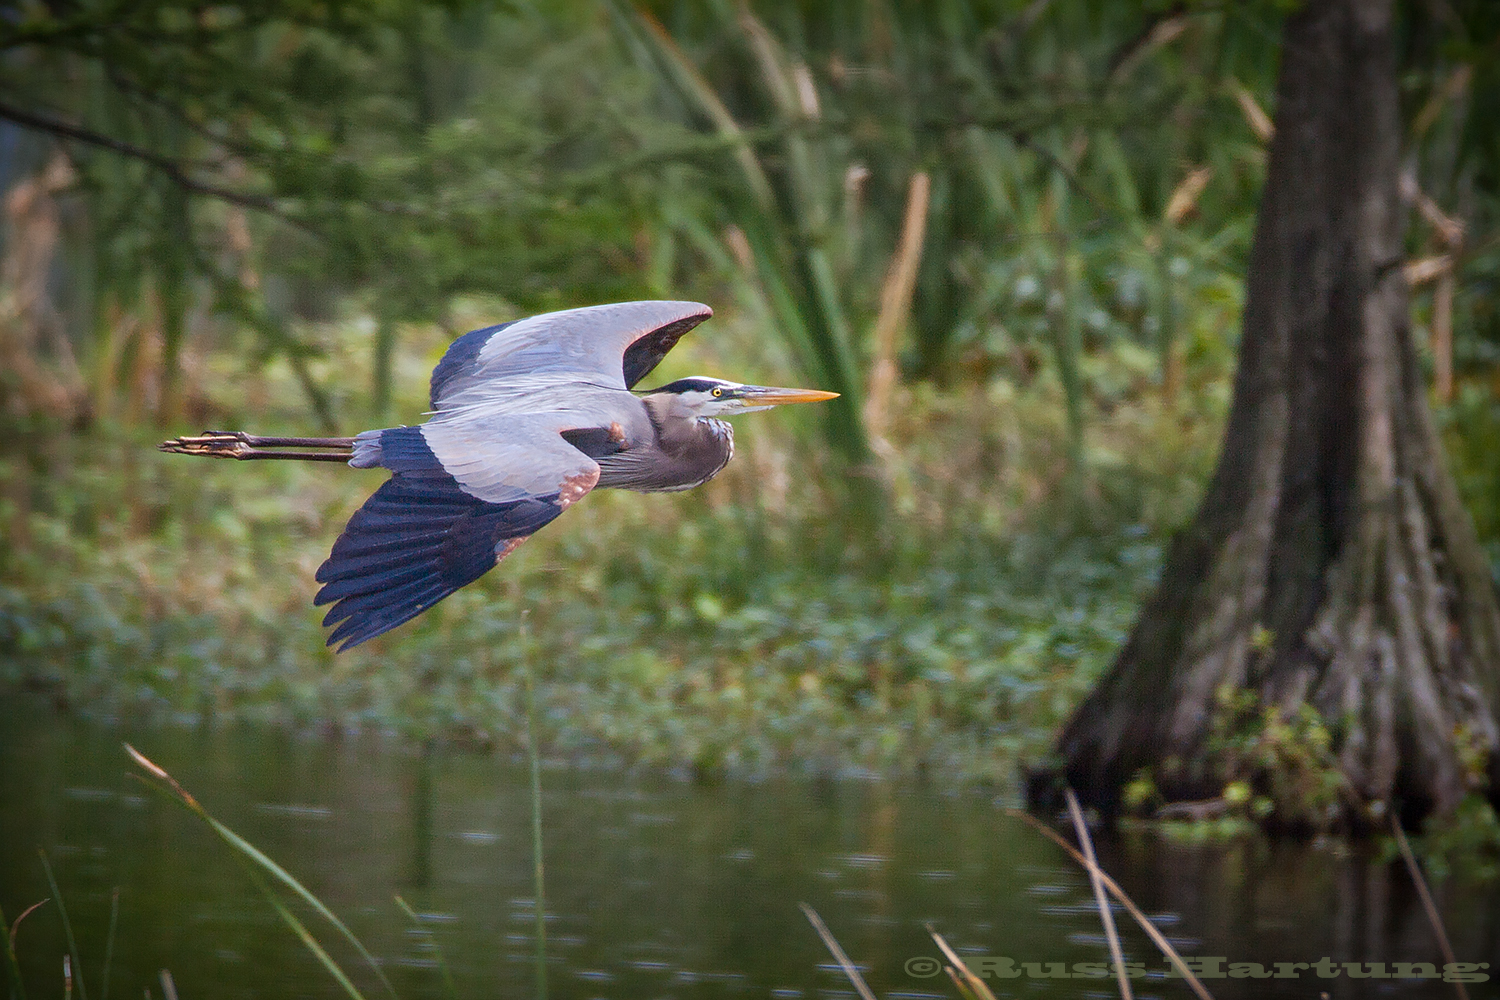 Great Blue Heron flying through the cypress swamps in the Orlando Wetlands Park during Spring migration.